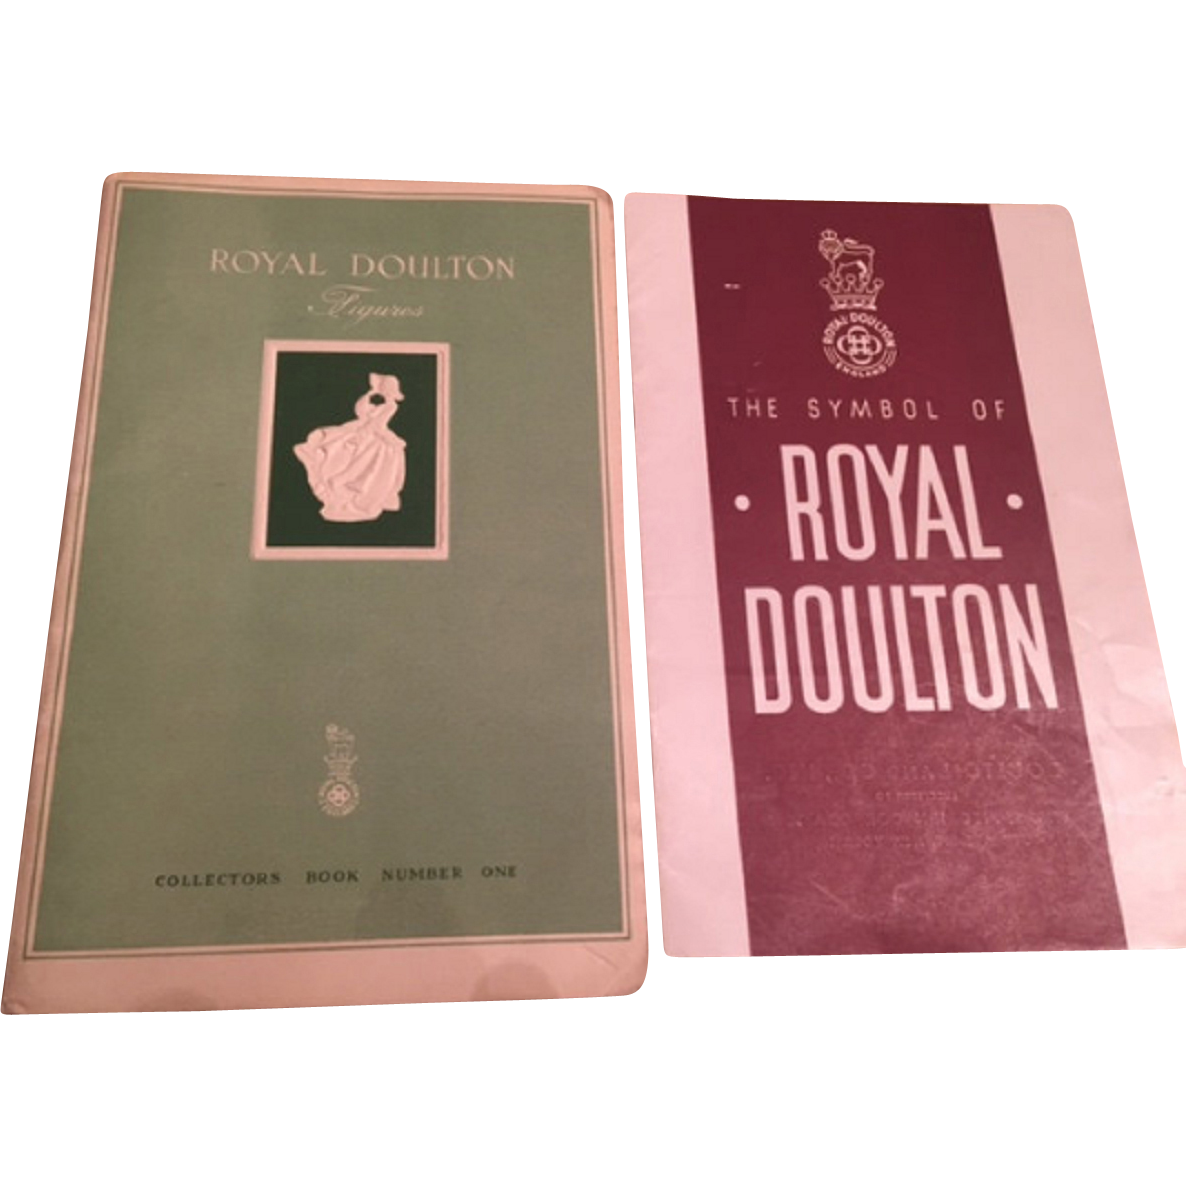 Two rare 1940s royal doulton publications royal doulton two rare 1940s royal doulton publications royal doulton figurines collectors book no 1 the biocorpaavc Gallery